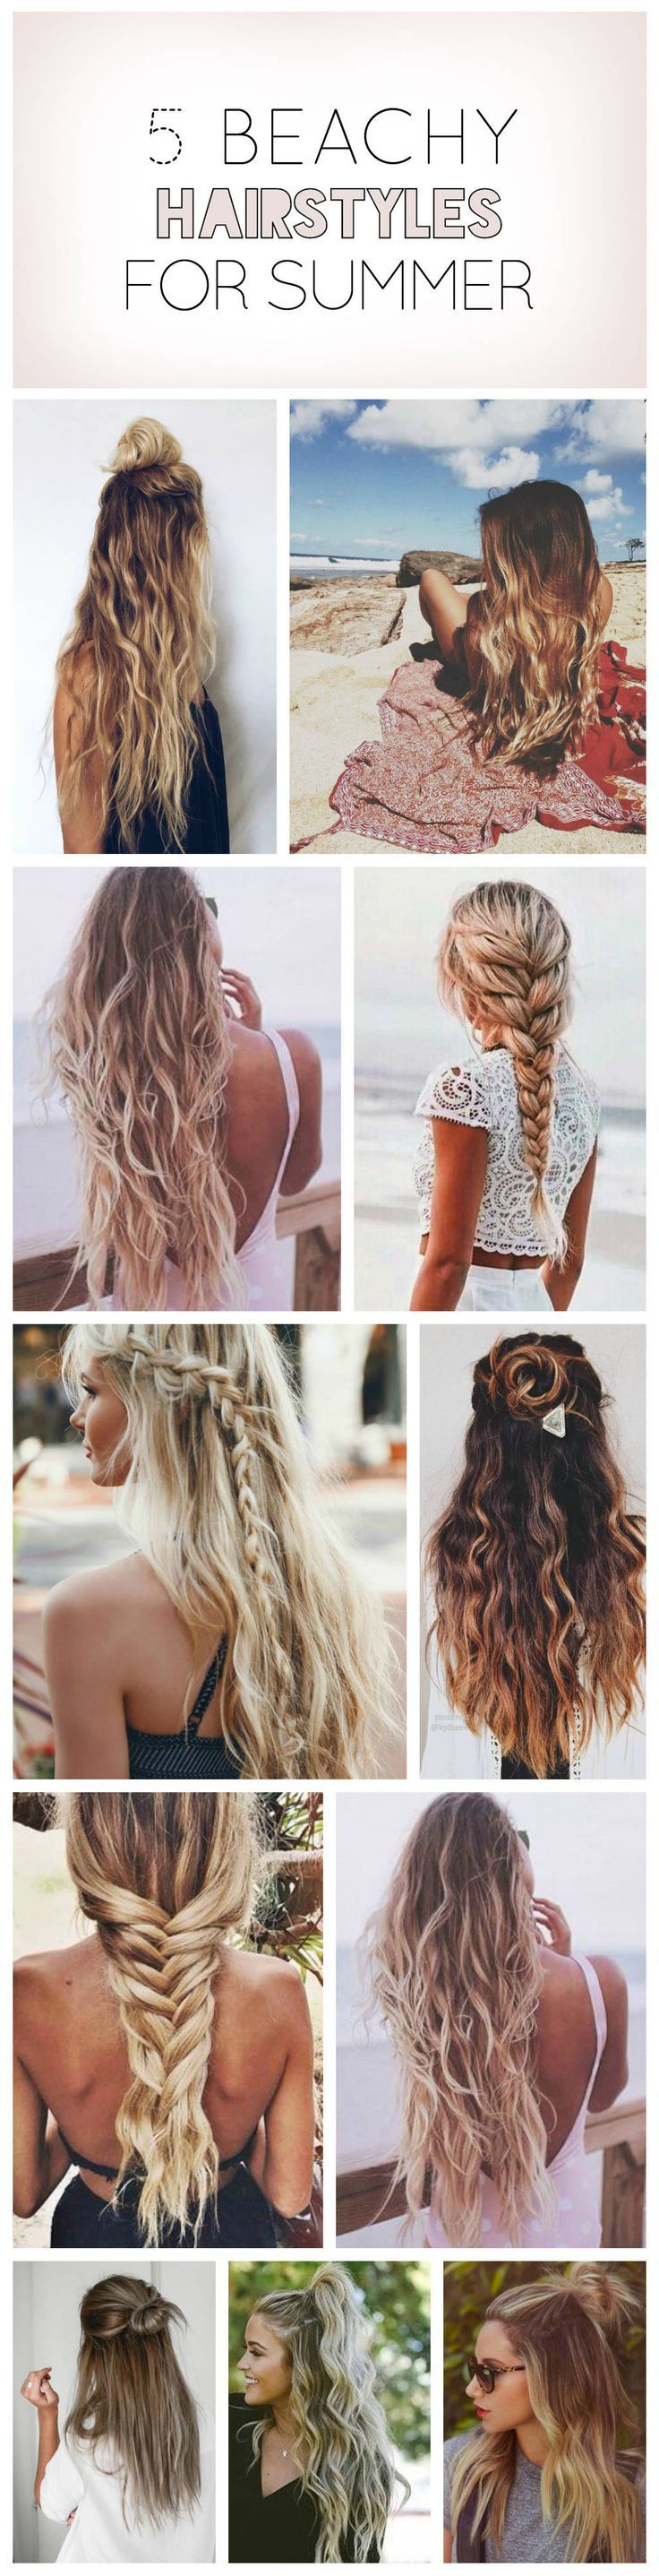 easy summer hairstyles | easy summer hairstyles, summer and school